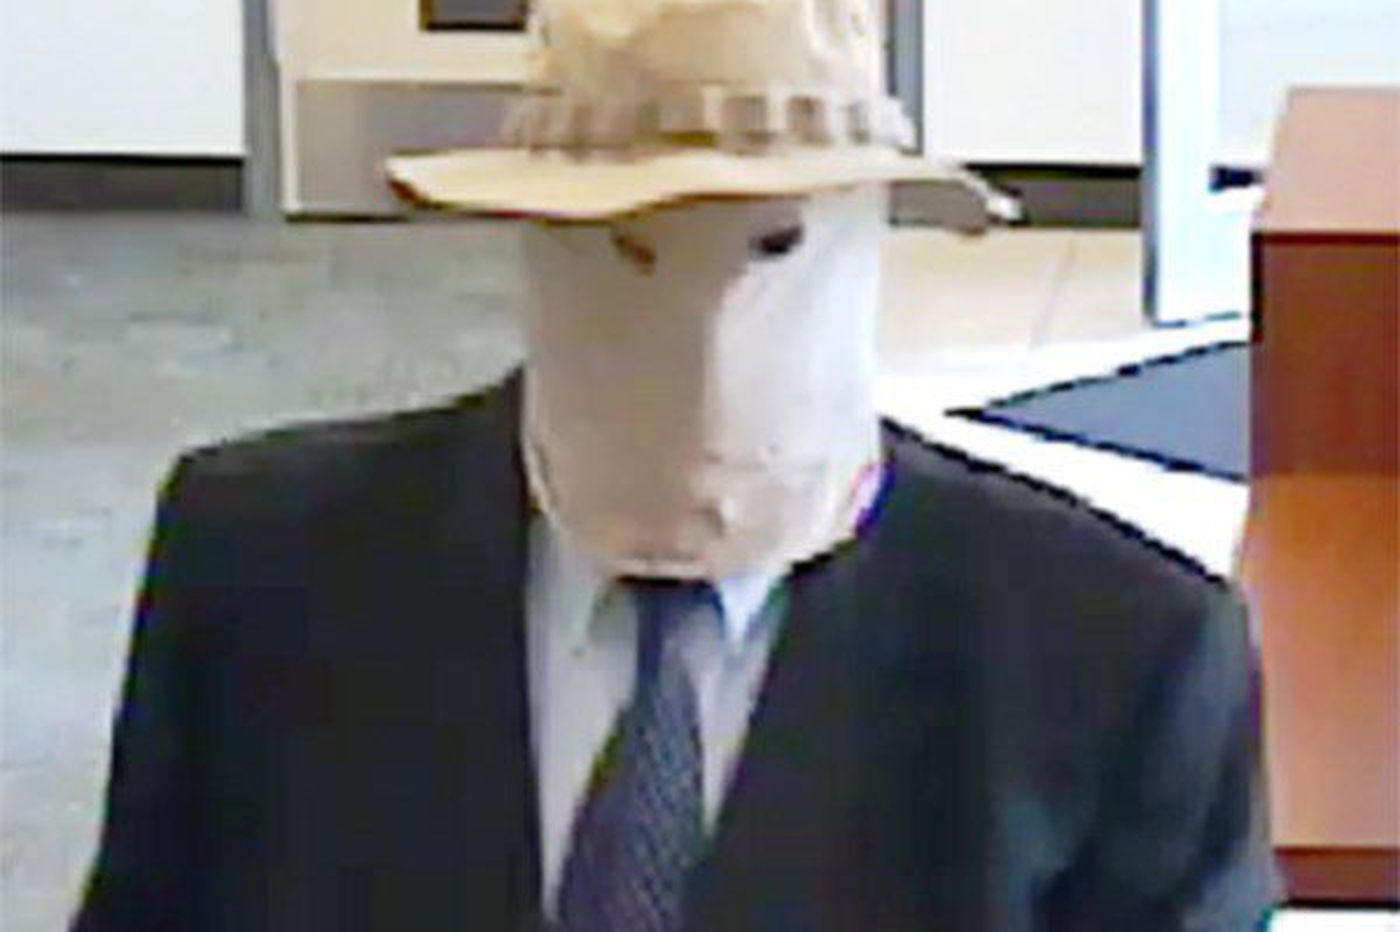 Bucks County's 'Straw Hat Bandit' robbed 19 banks to pay his bills. His latest haul? More than 70 years in prison.